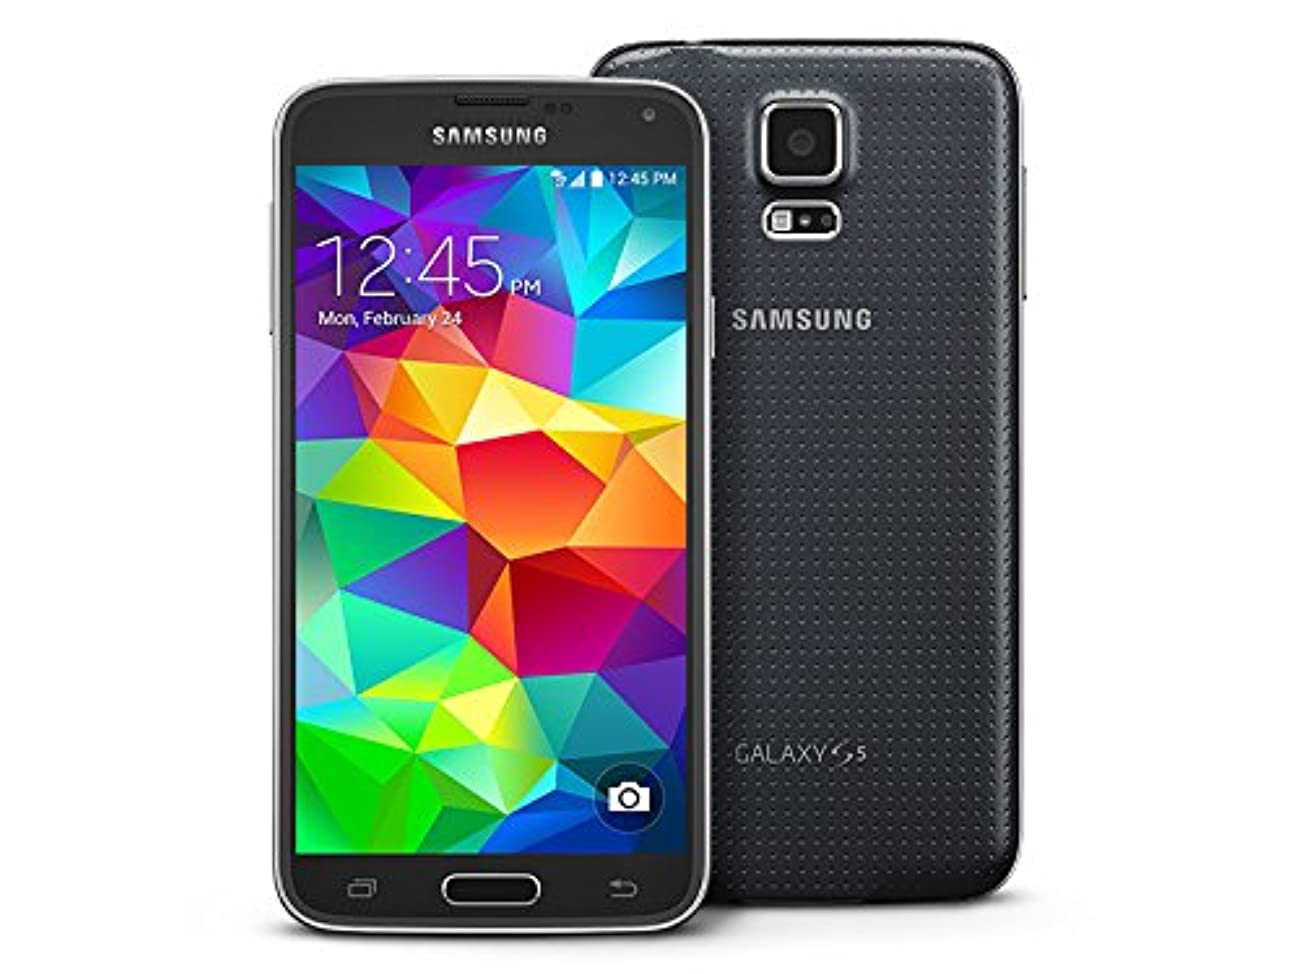 Samsung Galaxy S5 G900T 16GB Unlocked Cellphone - Black